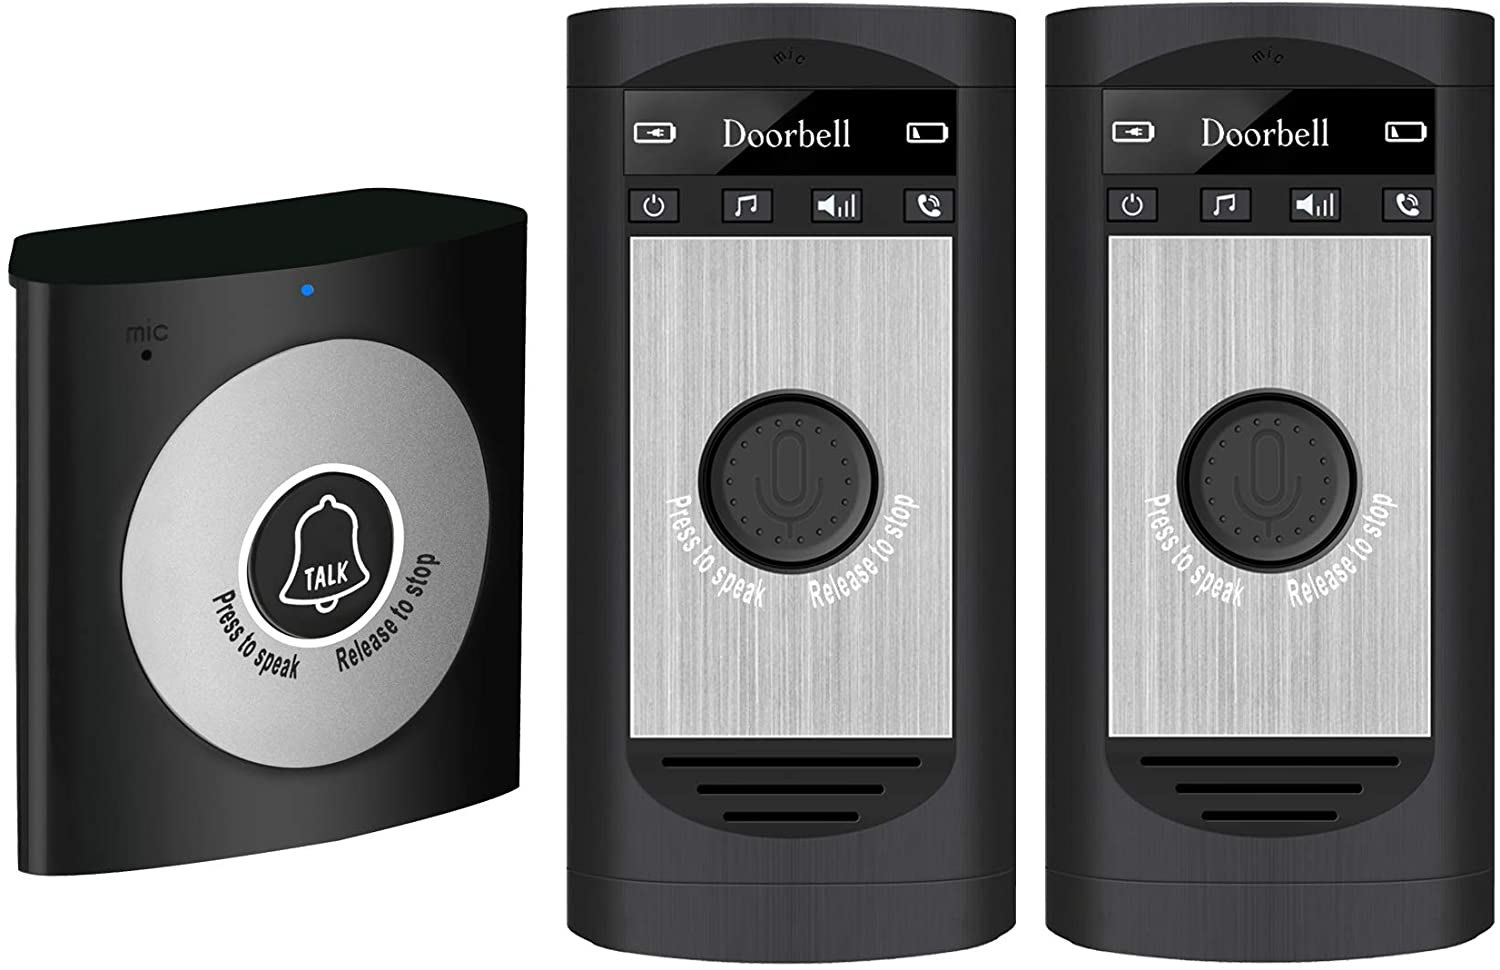 H7a One Transmitter And Two Receivers Home Wireless Doorbell Voice Intercom Two-way Intercom For Home And Office